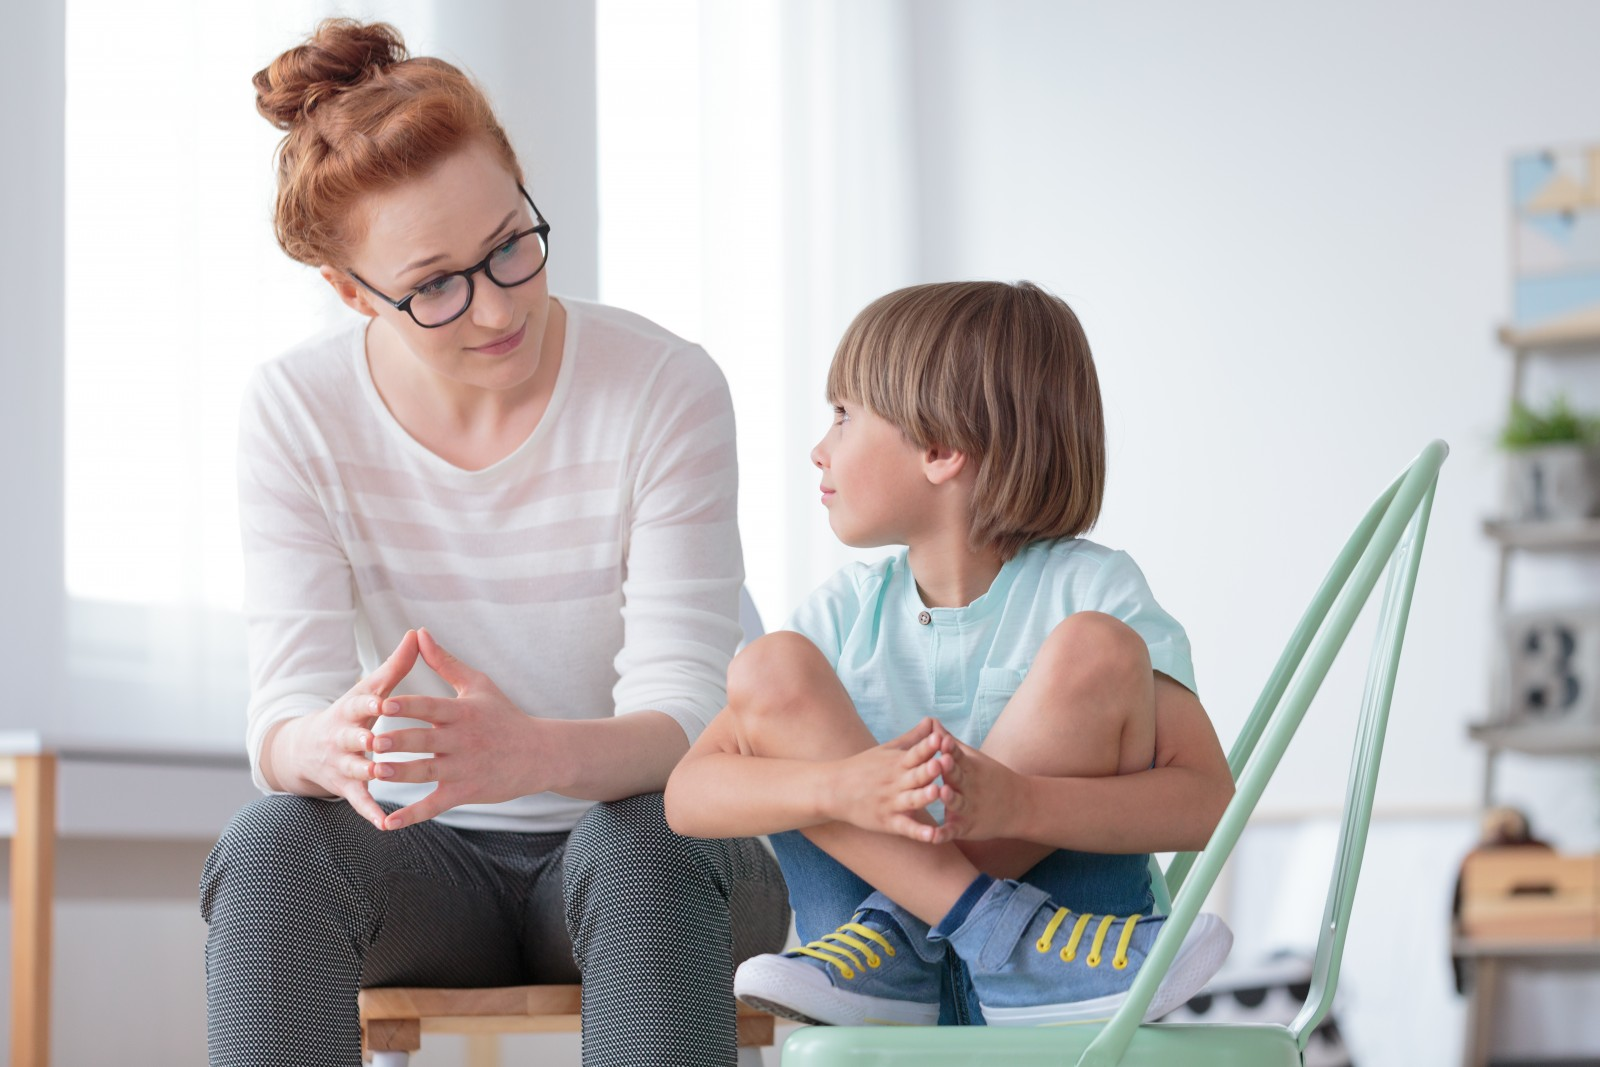 13 ways to teach a child to speak at 1.5, 2 or 3 years old, gre verbal practice